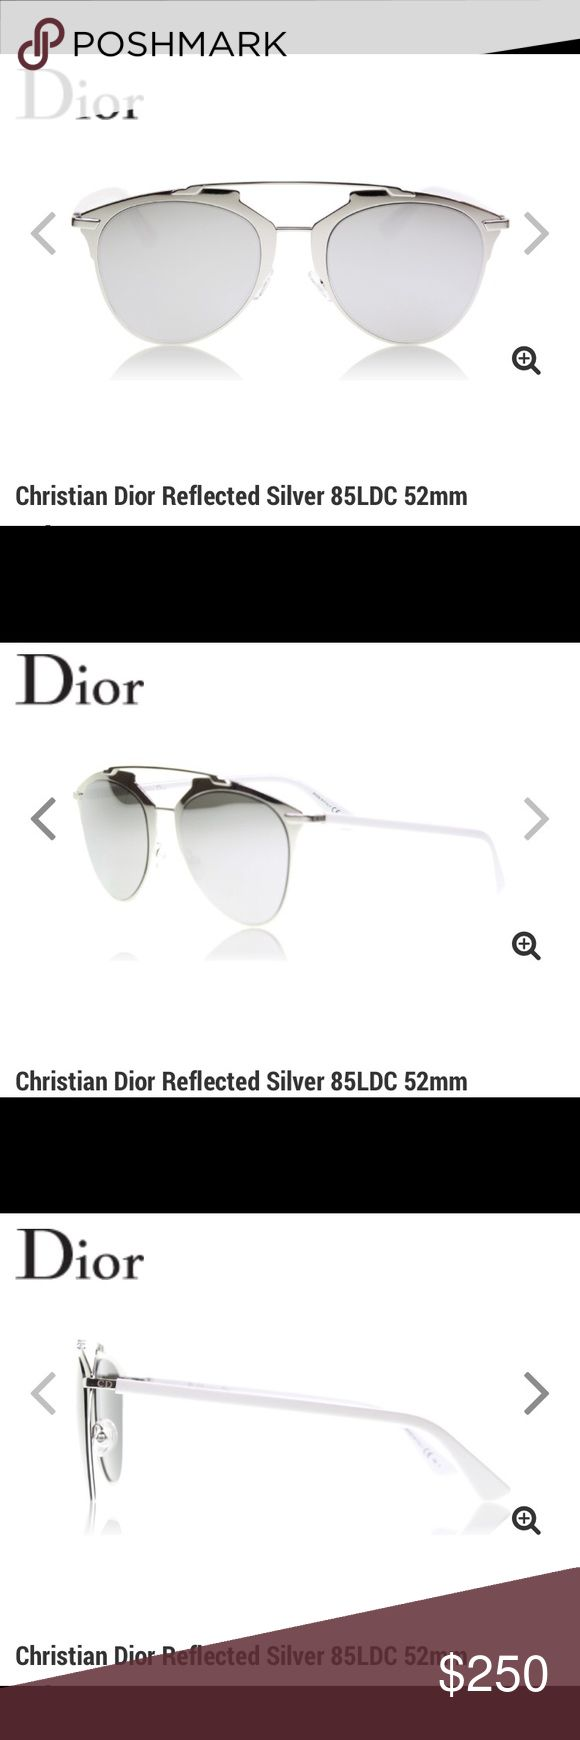 Christian Dior Reflected Silver 85LDC 52mm Dior Reflected evolves from the house's successful So Real sunglass. The silhouette is reinterpreted in clean flat metal and scaled up. Metallic surfaces play off one another. Flawless mirrored lenses complete the frame's futuristic feel. Sleek metal arms are etched with the original CD monogram until recently reserved for the Dior Homme sunglasses line. Handcrafted in Italy. Christian Dior Accessories Sunglasses